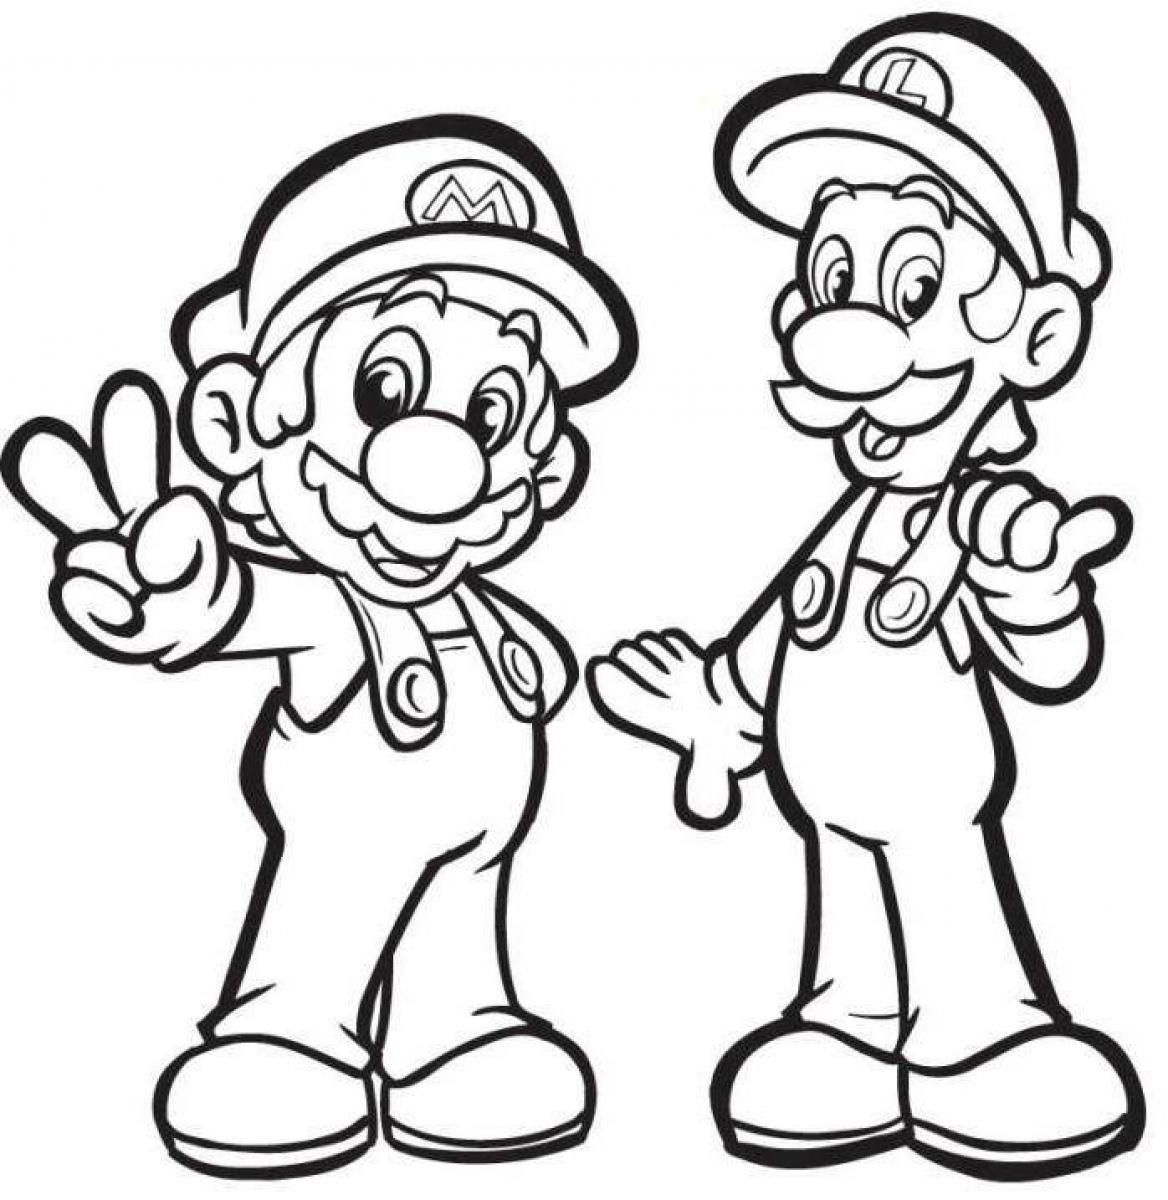 Luigi Coloring Pages Only Coloring Pages Super Mario Coloring Pages Super Mario Bros Party Mario Coloring Pages